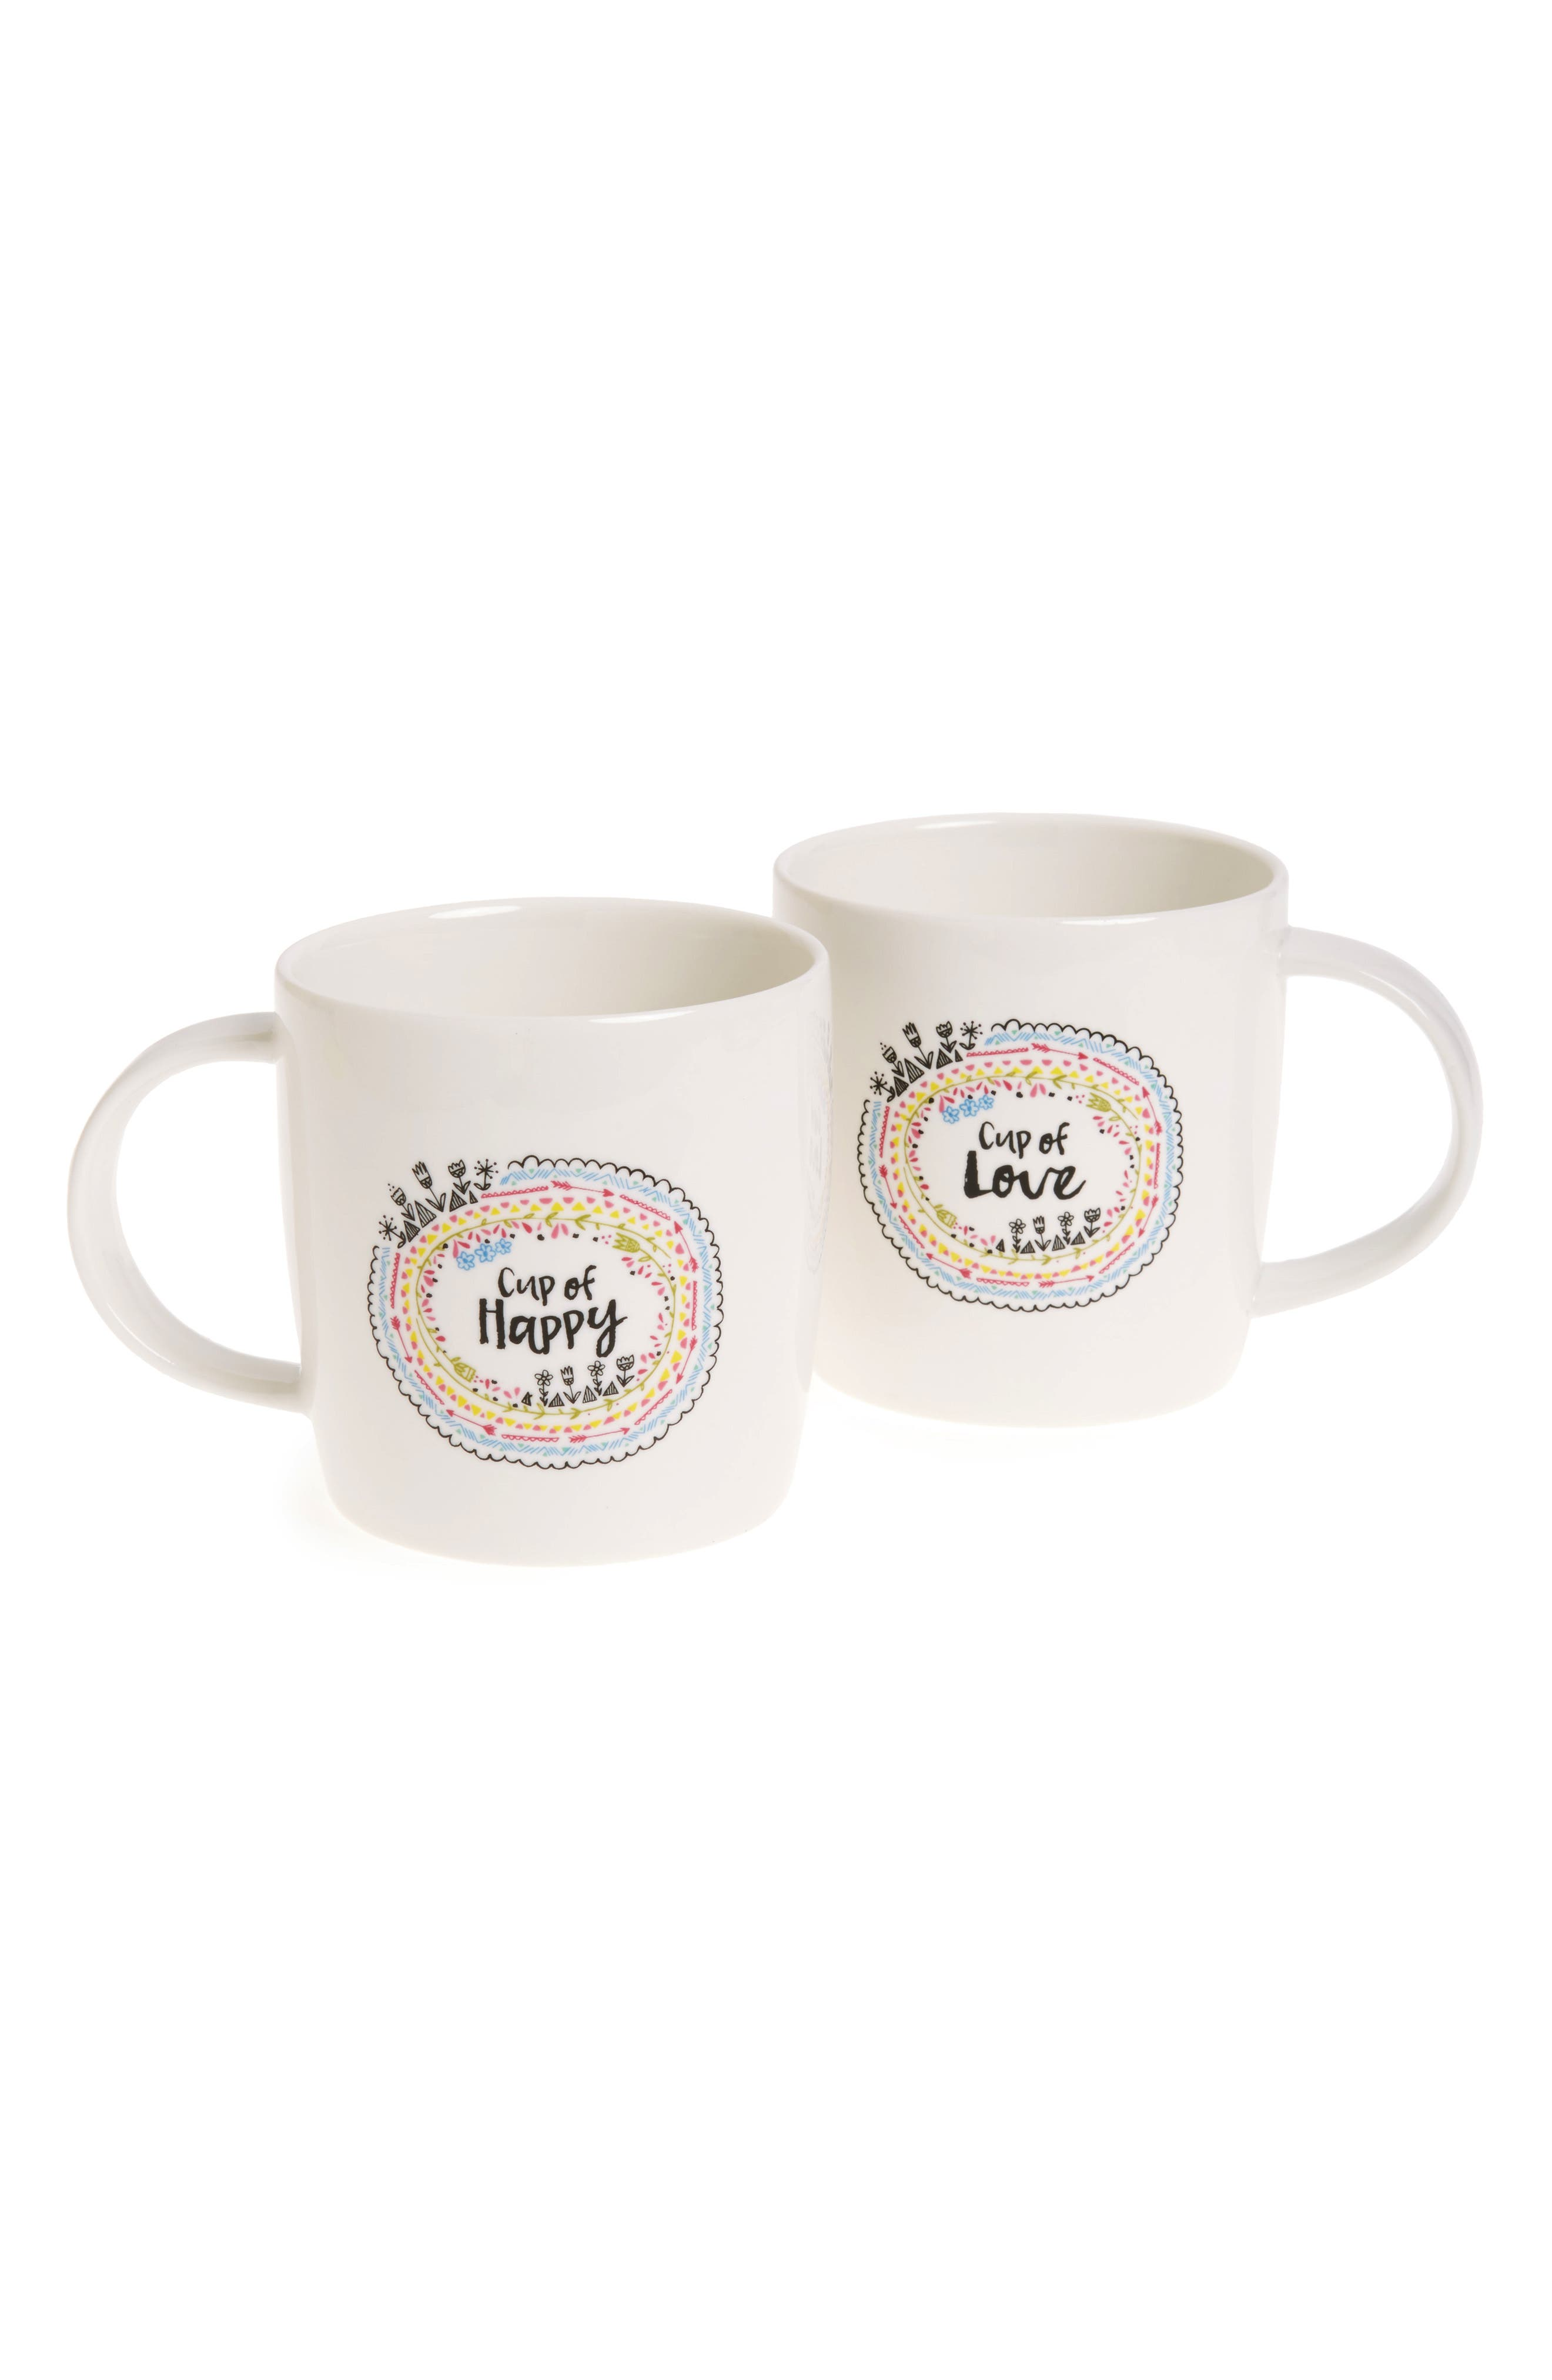 Cup of Happy & Cup of Love Set of 2 Mugs,                             Main thumbnail 1, color,                             Ivory